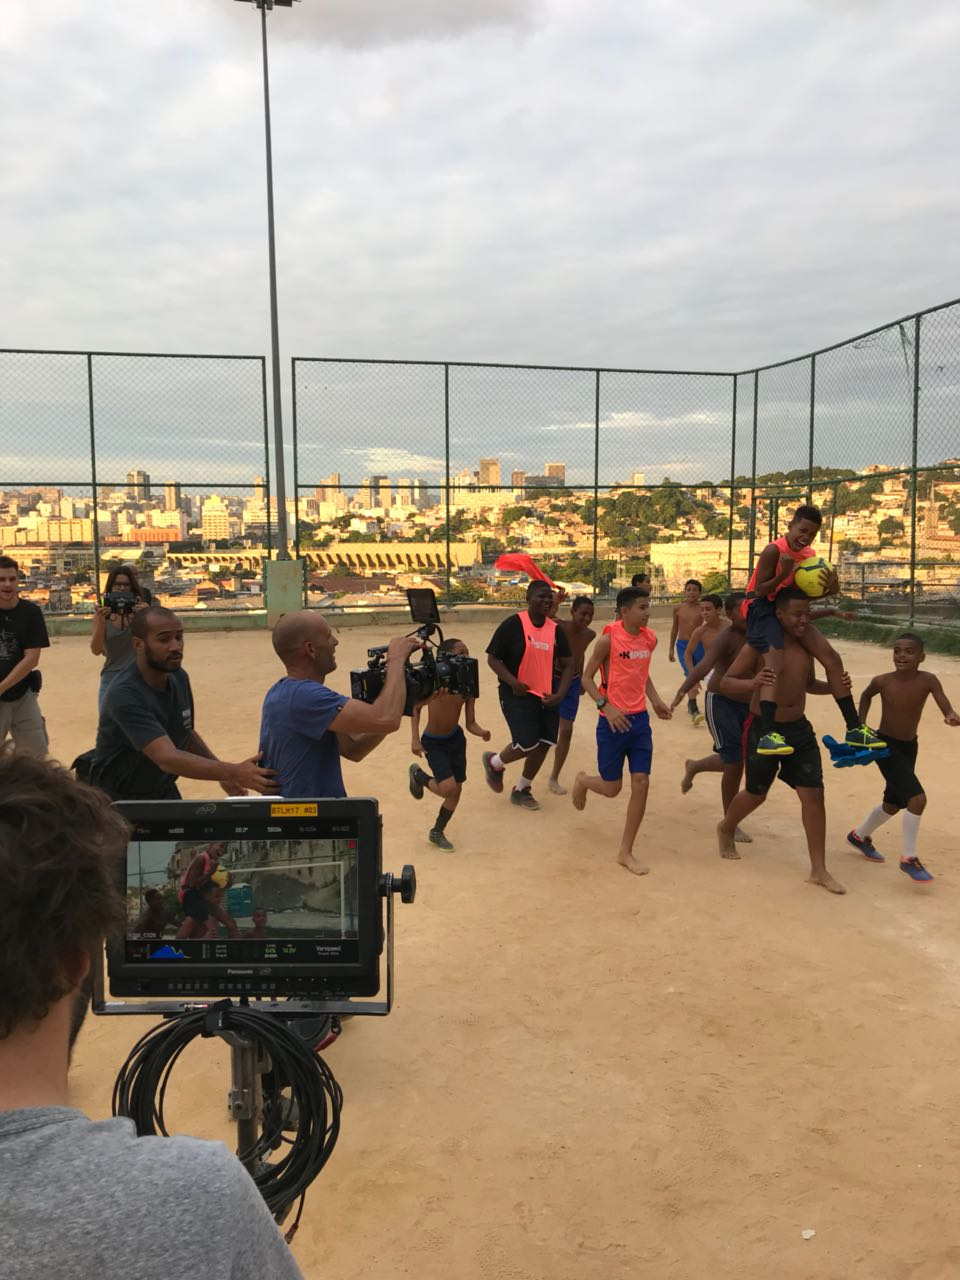 UPDATE: BPS PRODUCES SPORTS SHOOT FOR DECATHLON IN BRAZIL